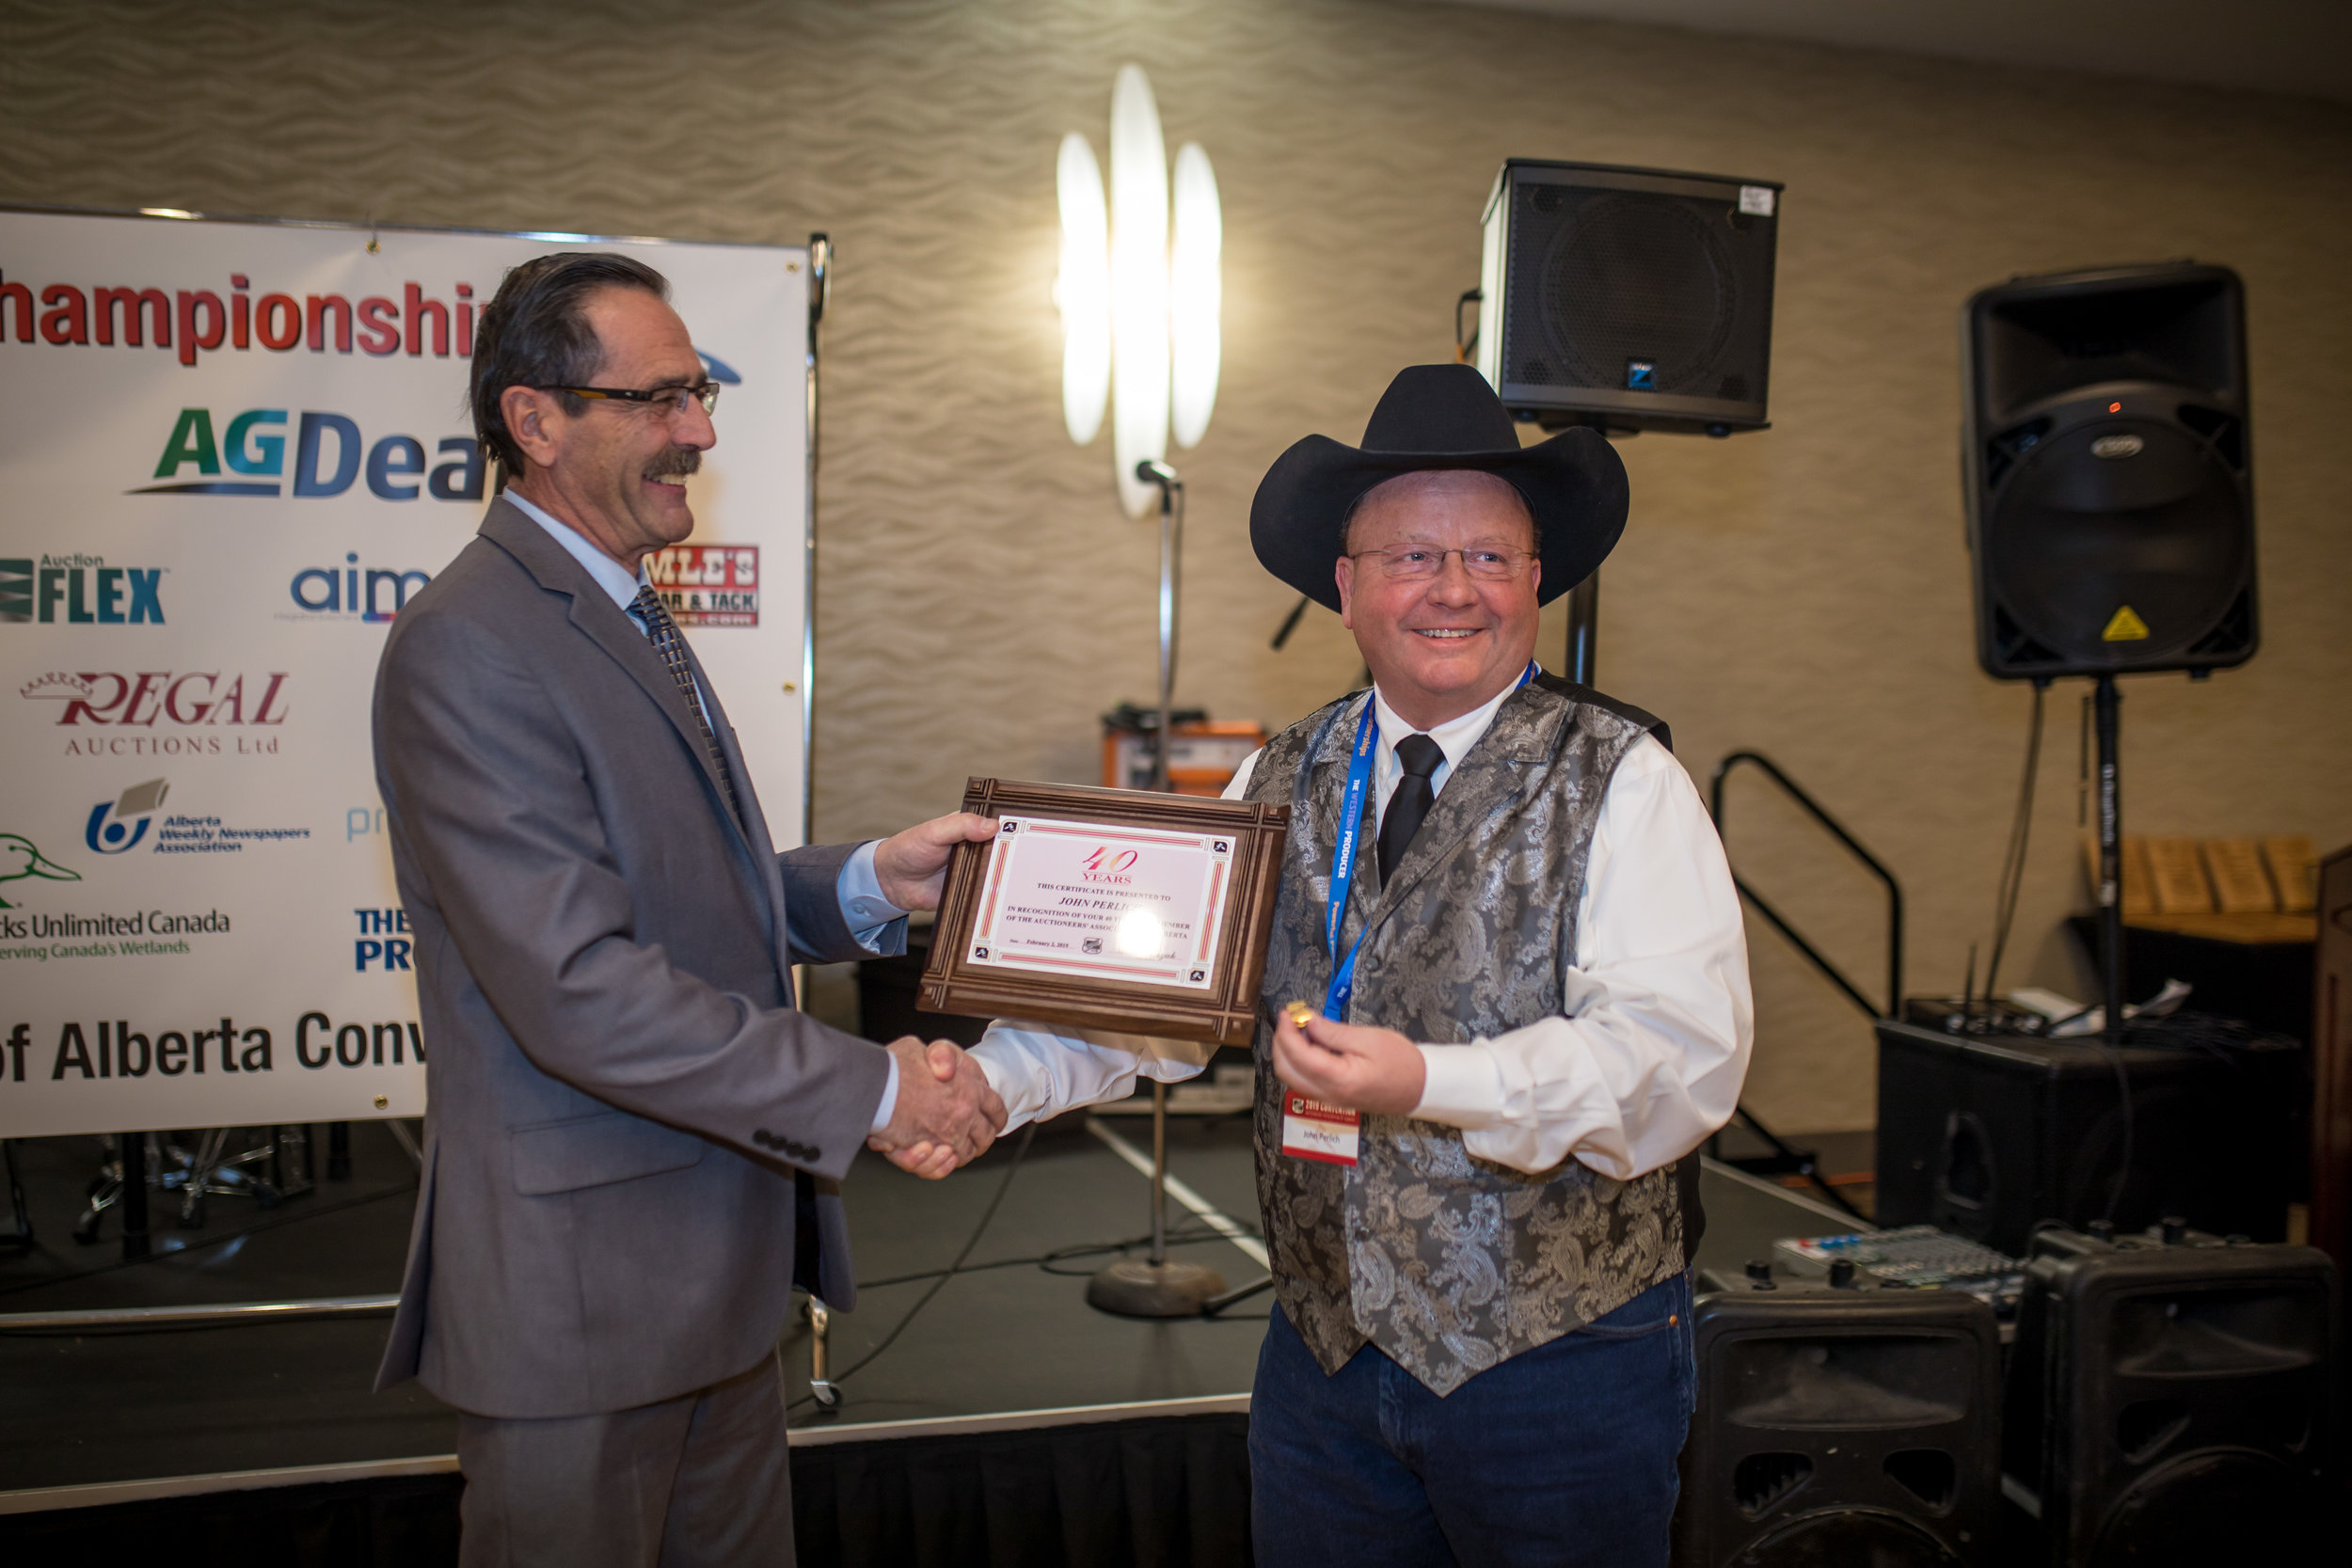 2019 02-02 Alberta Auctioneer Convention Day 03 - Calgary 06.jpg